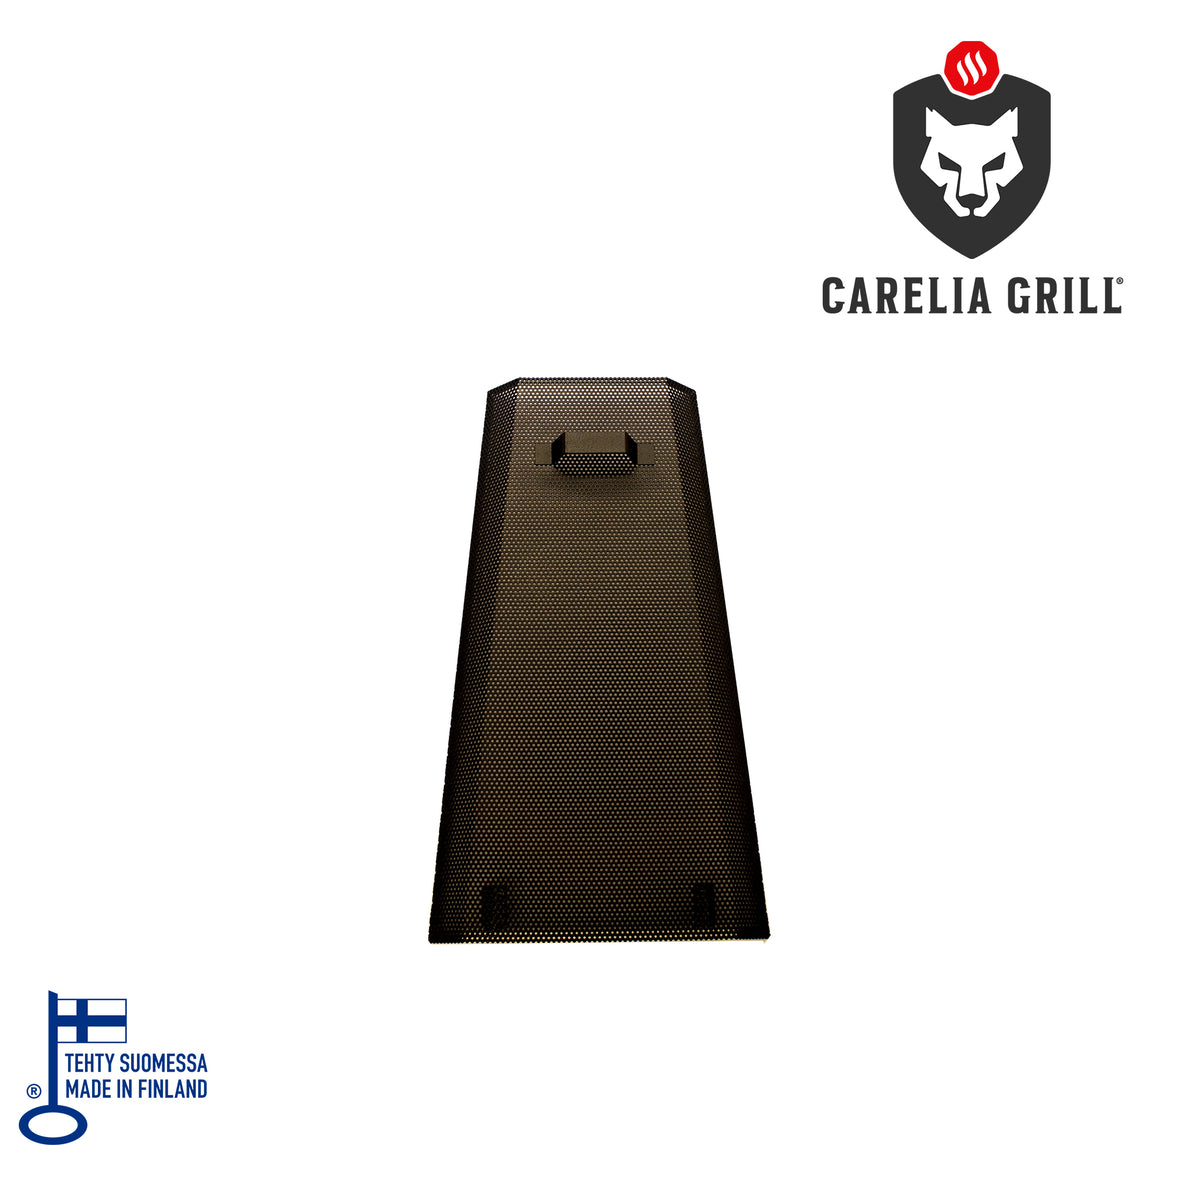 CARELIA GRILL® A-FIRE WIND & SPARK SHIELD